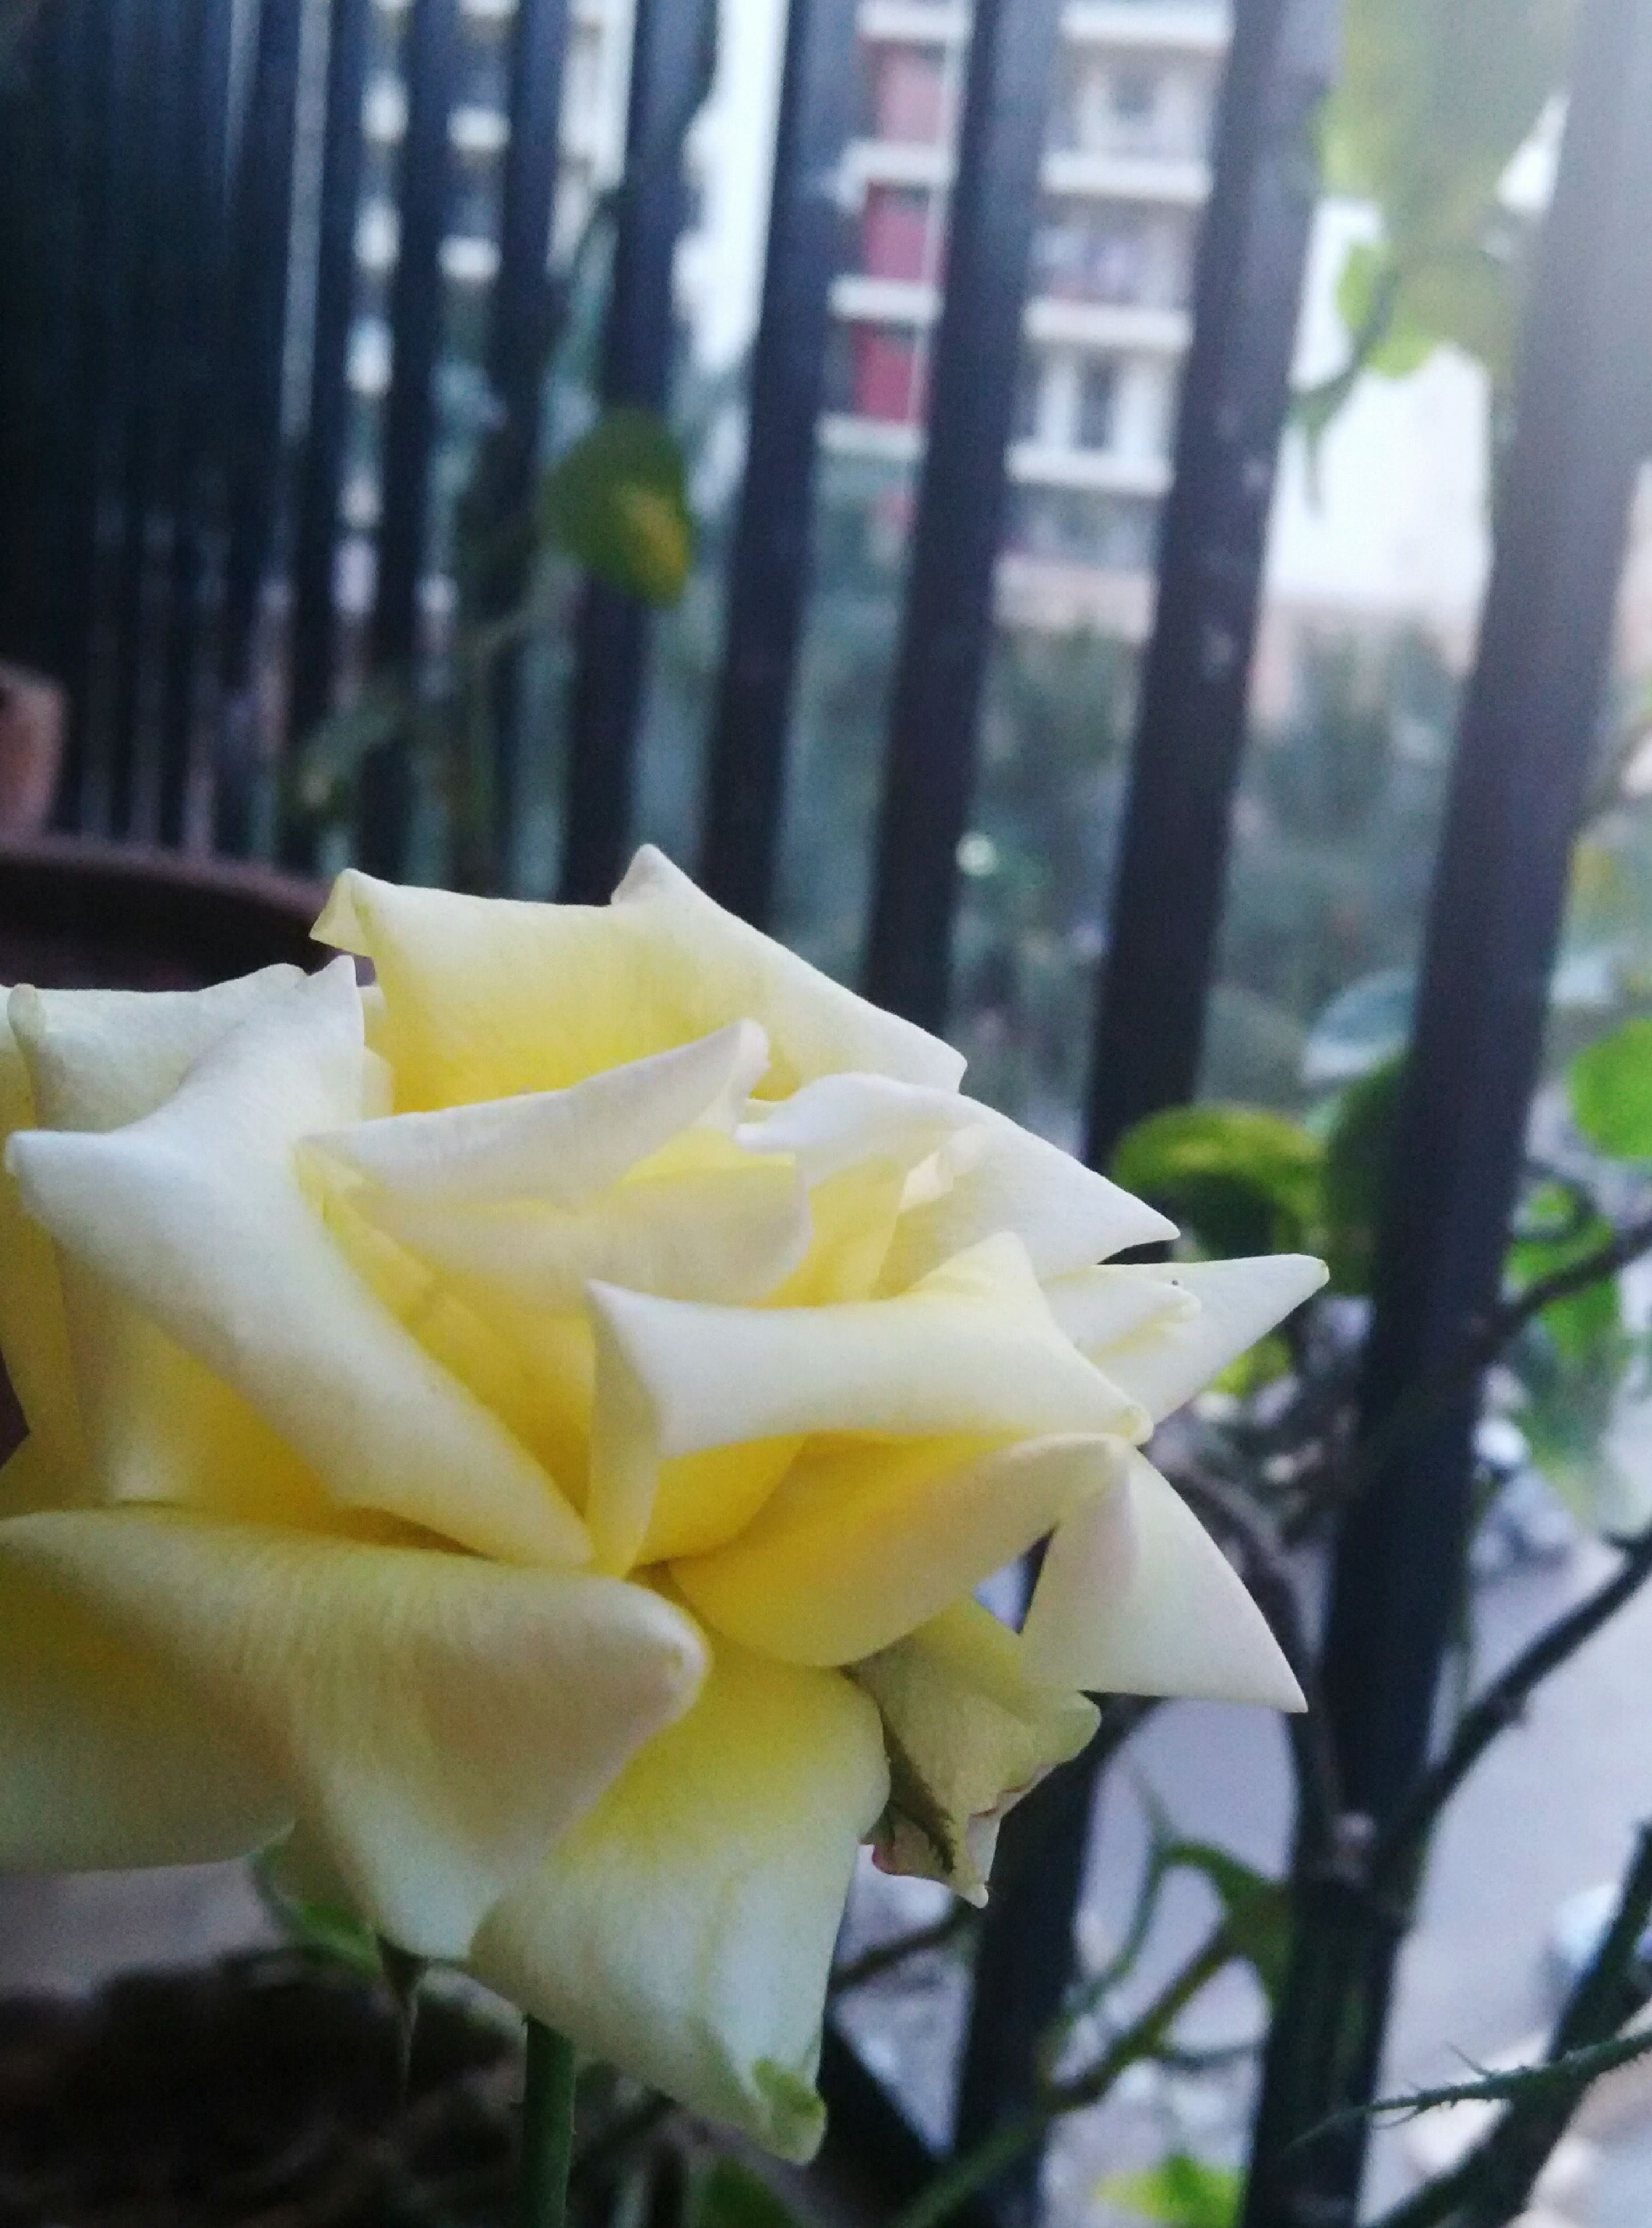 flower, petal, flower head, freshness, fragility, close-up, focus on foreground, growth, rose - flower, beauty in nature, yellow, single flower, white color, blooming, nature, plant, in bloom, leaf, blossom, day